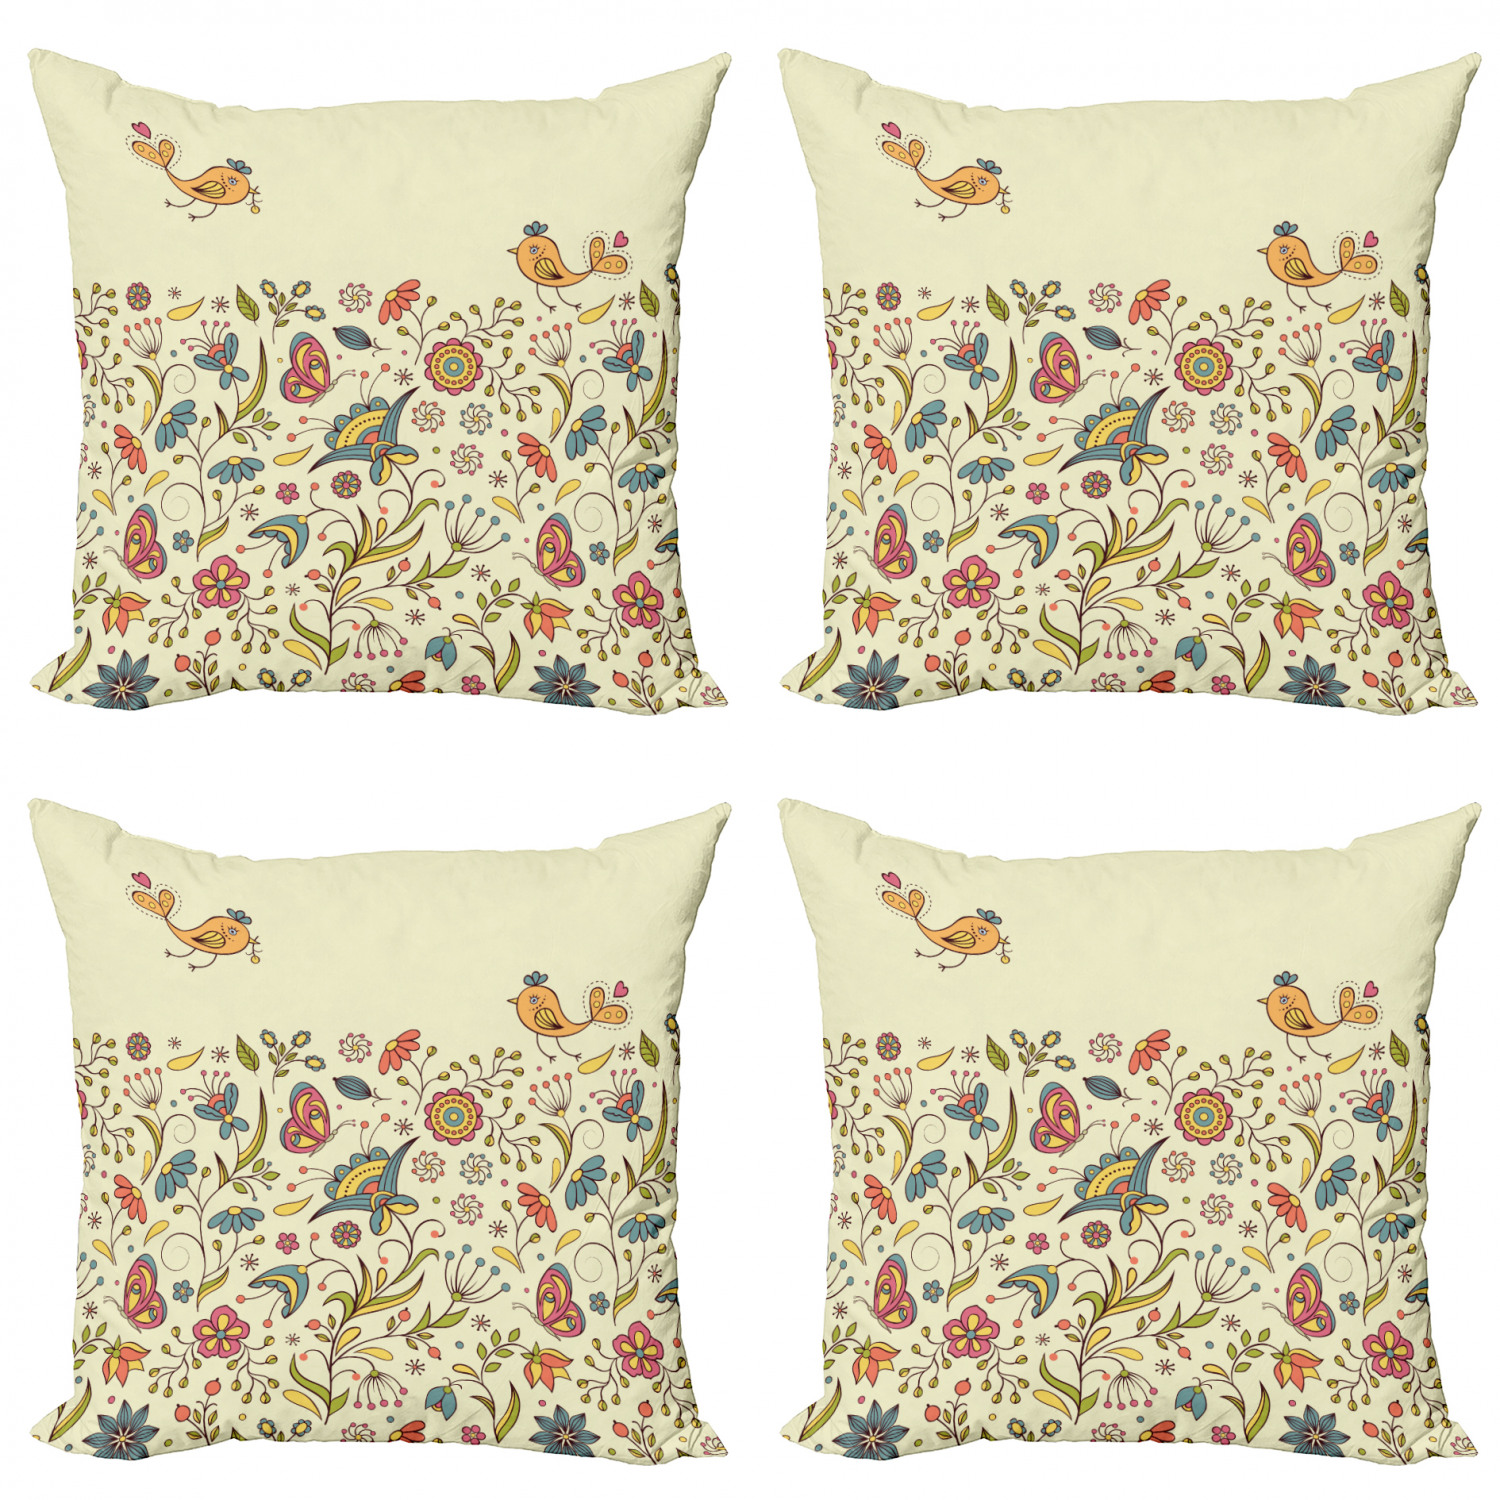 Ambesonne-Floral-Drawings-Cushion-Cover-Set-of-4-for-Couch-and-Bed-in-4-Sizes thumbnail 30